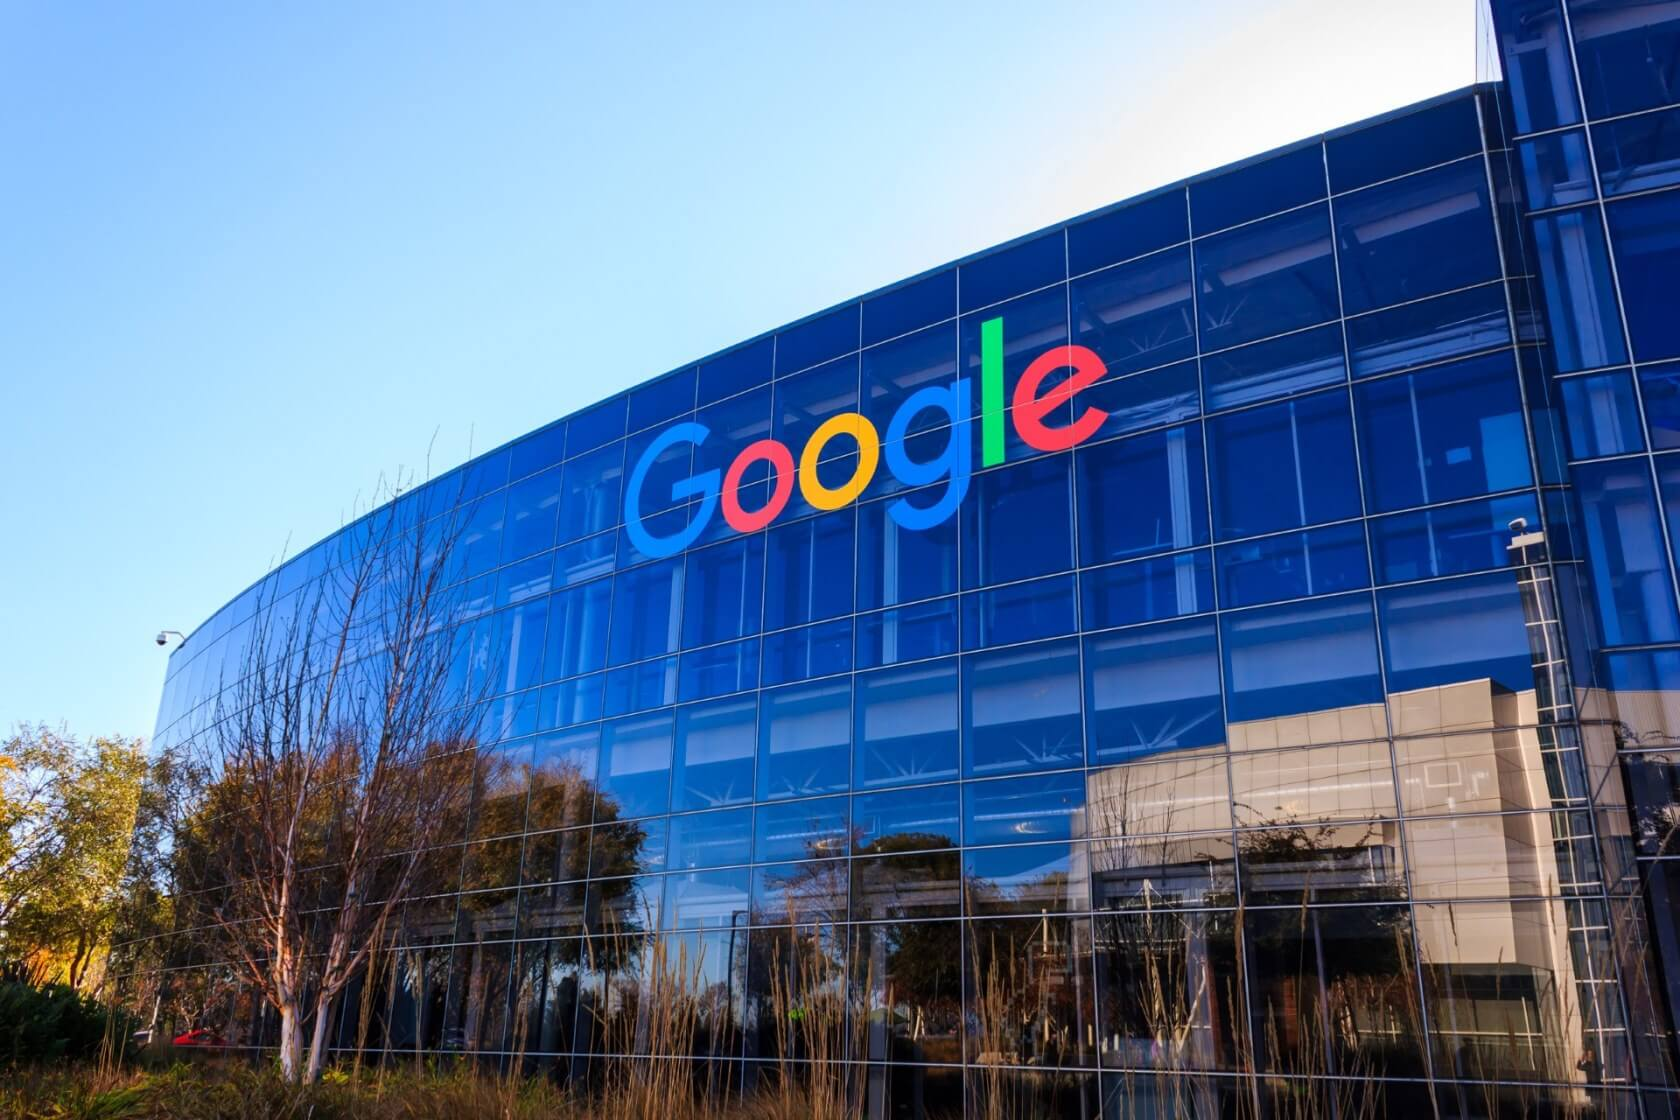 'More than half' of the US' state attorneys general are reportedly teaming up for a Google antitrust probe